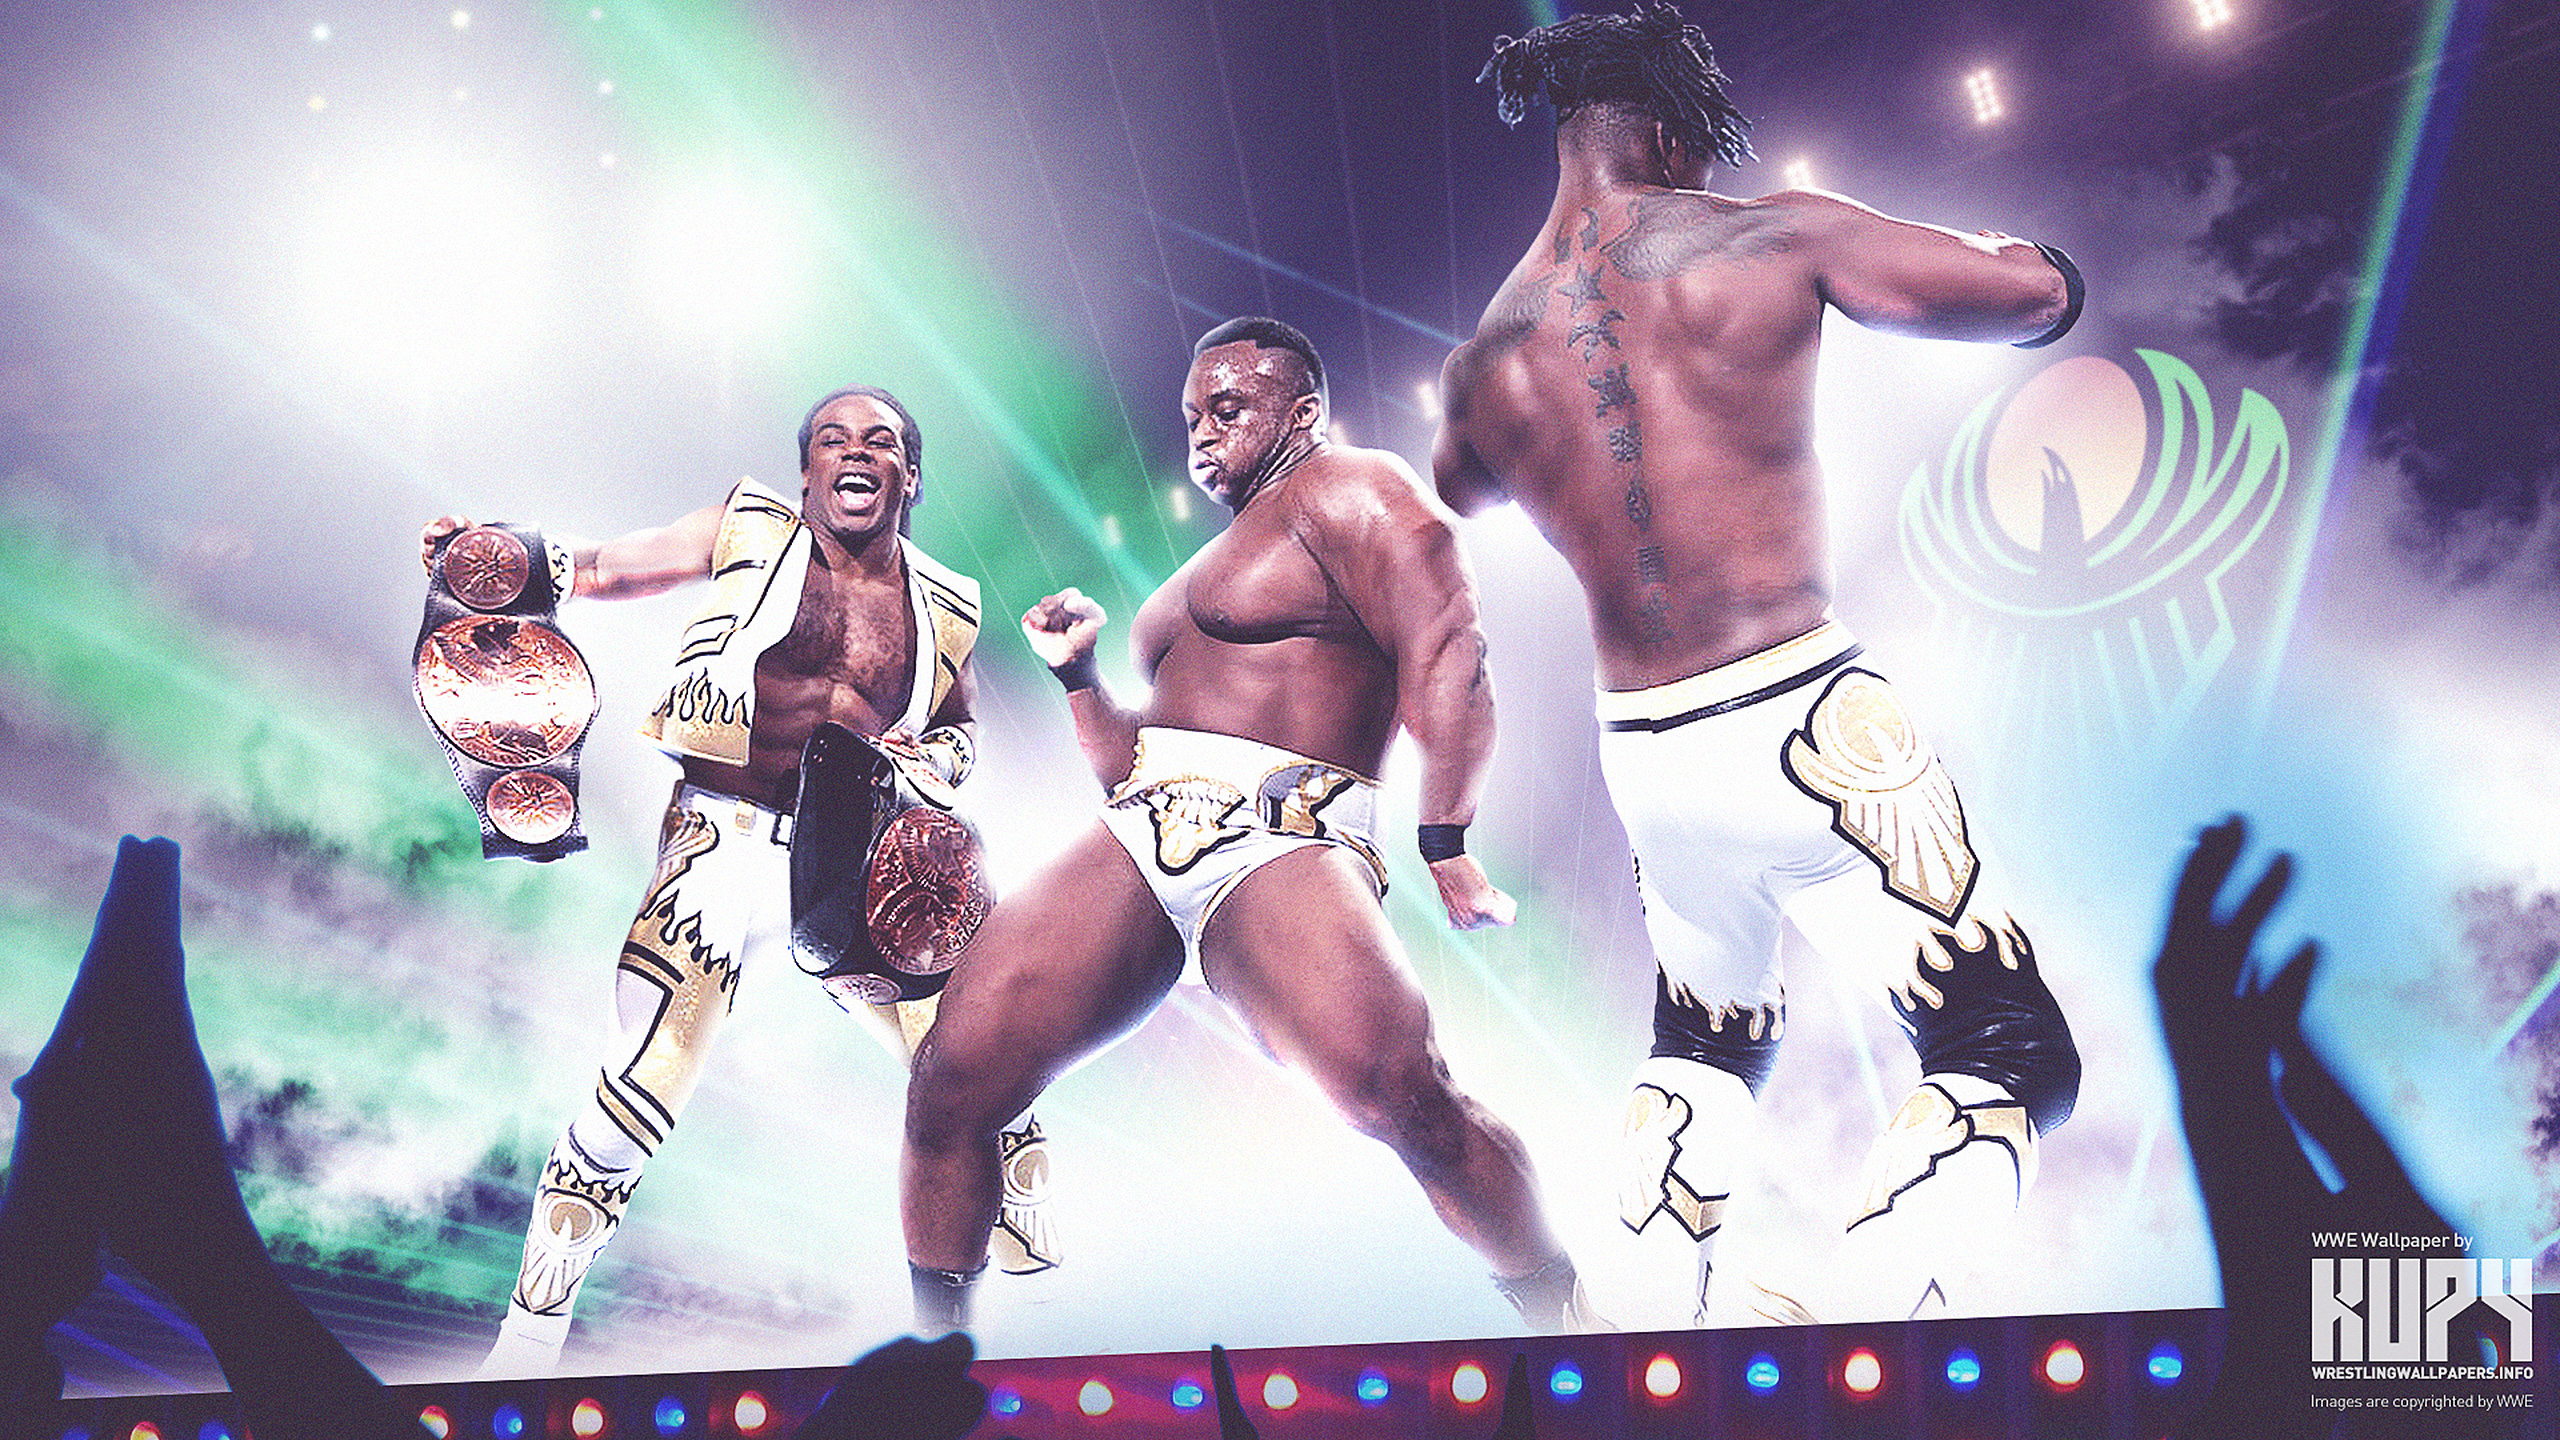 New 2015 Wwe New Day Wallpaper Kupy Wrestling Wallpapers The